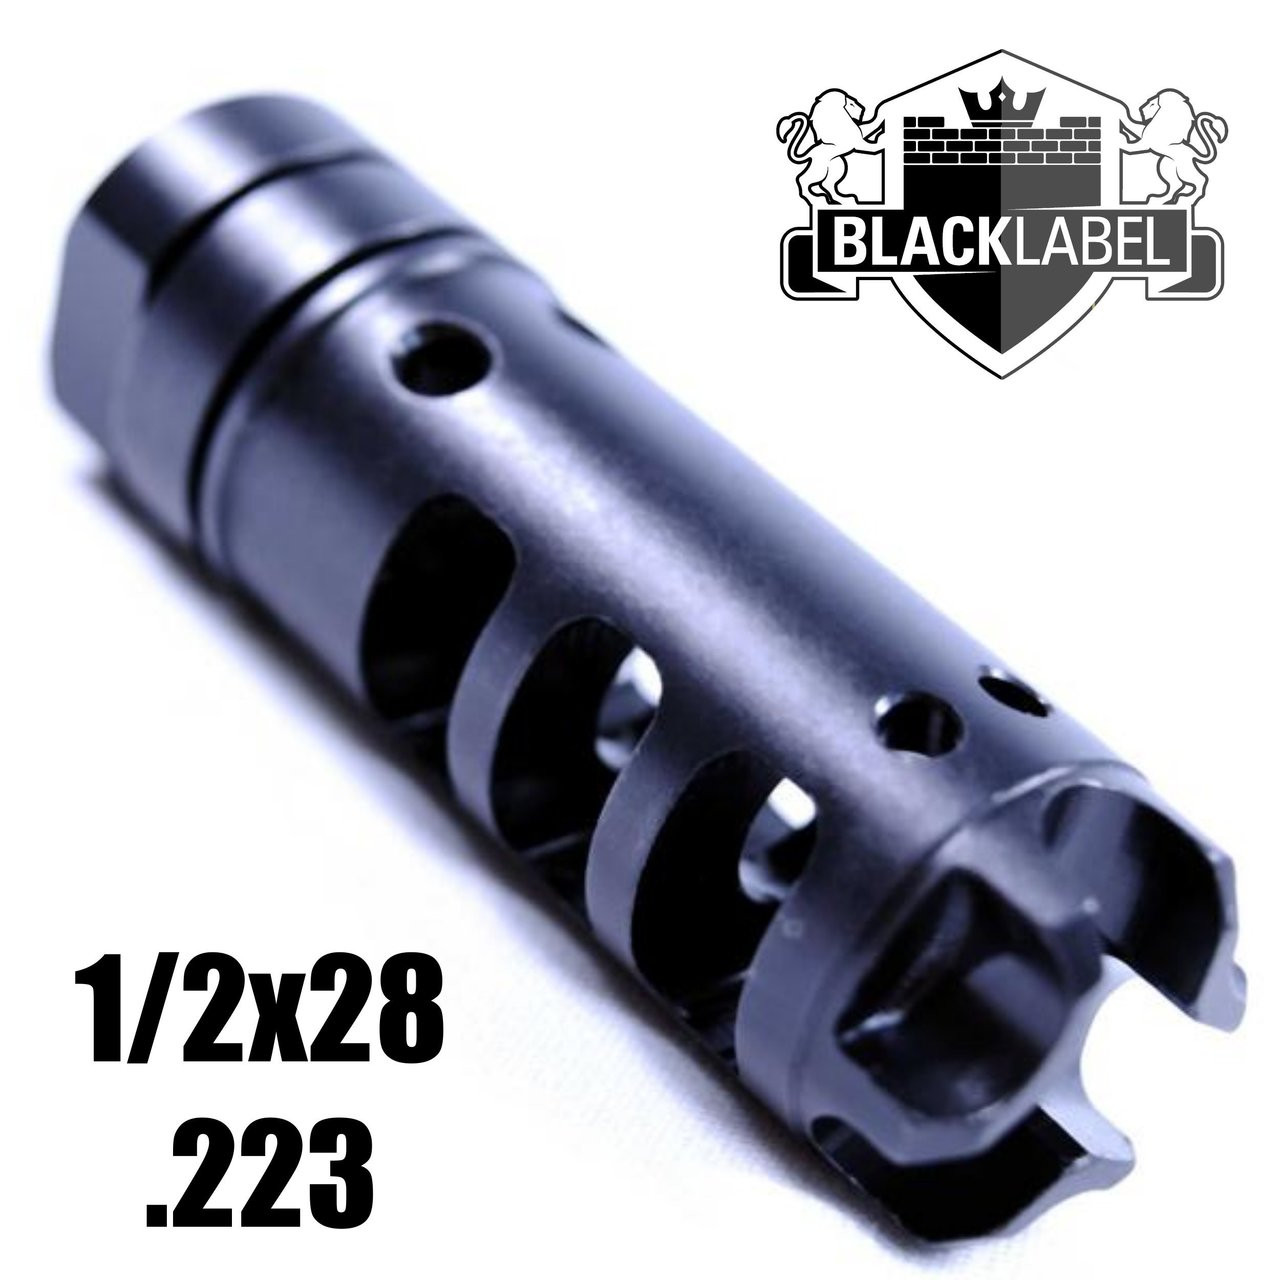 HYDRA-D Nitride Match Competition Brake 3-Stage Compensator | 1/2 x 28 .223